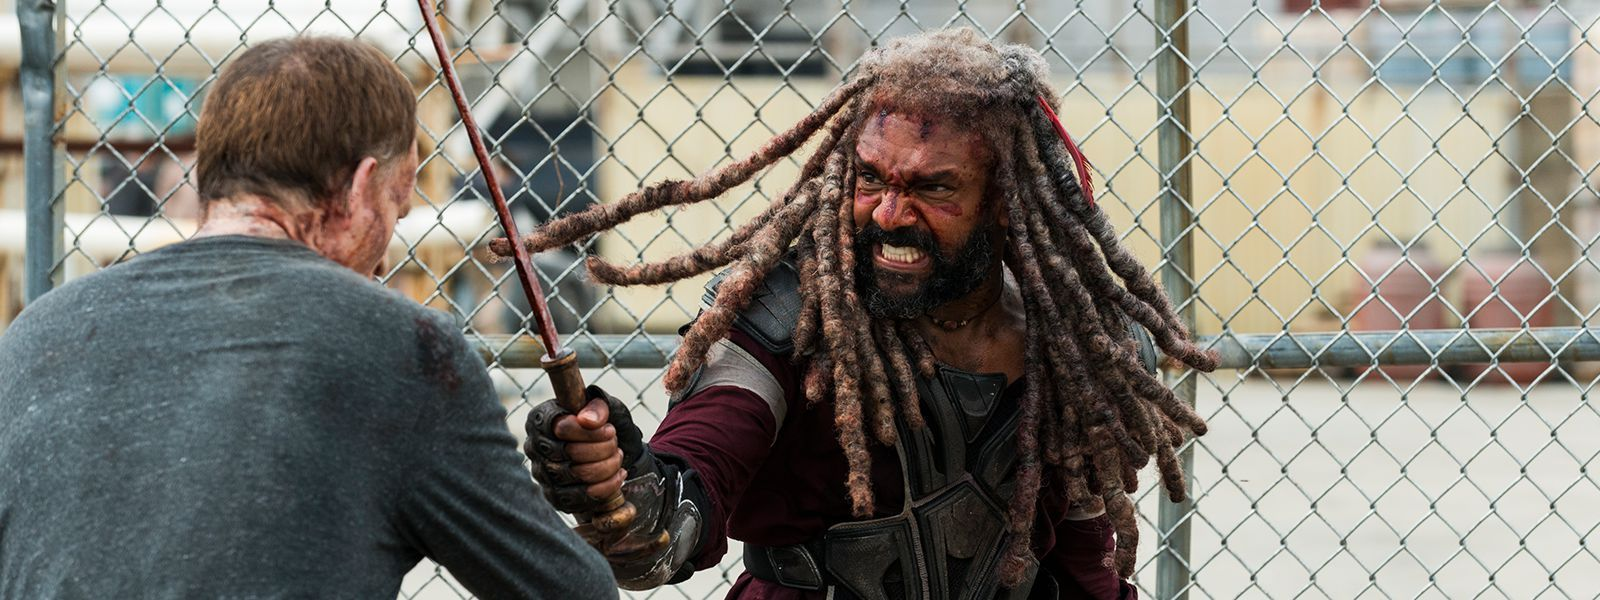 the-walking-dead-episode-804-ezekiel-payton-post-800×600